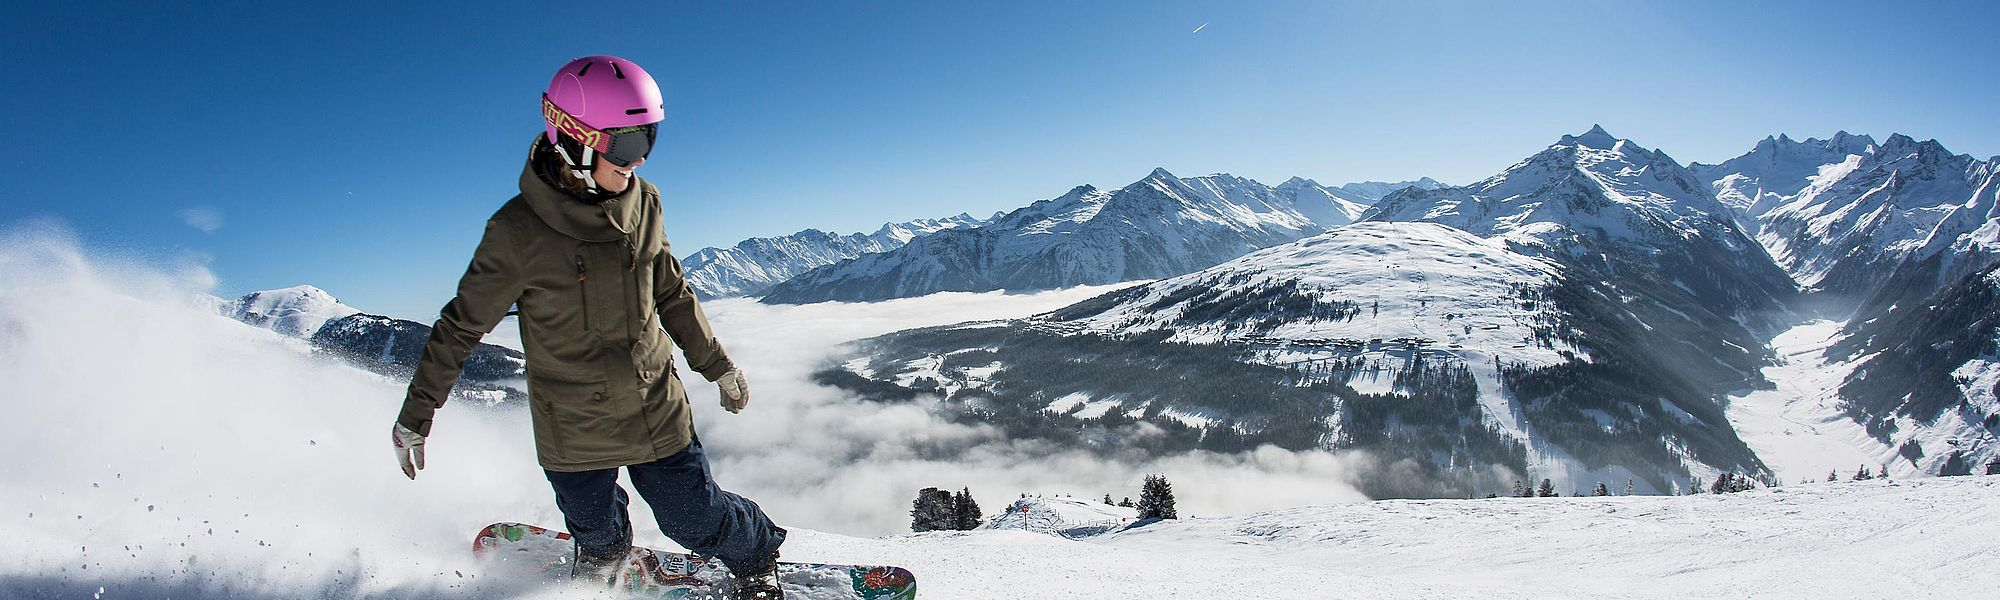 Snowboarding in the Zillertal Arena